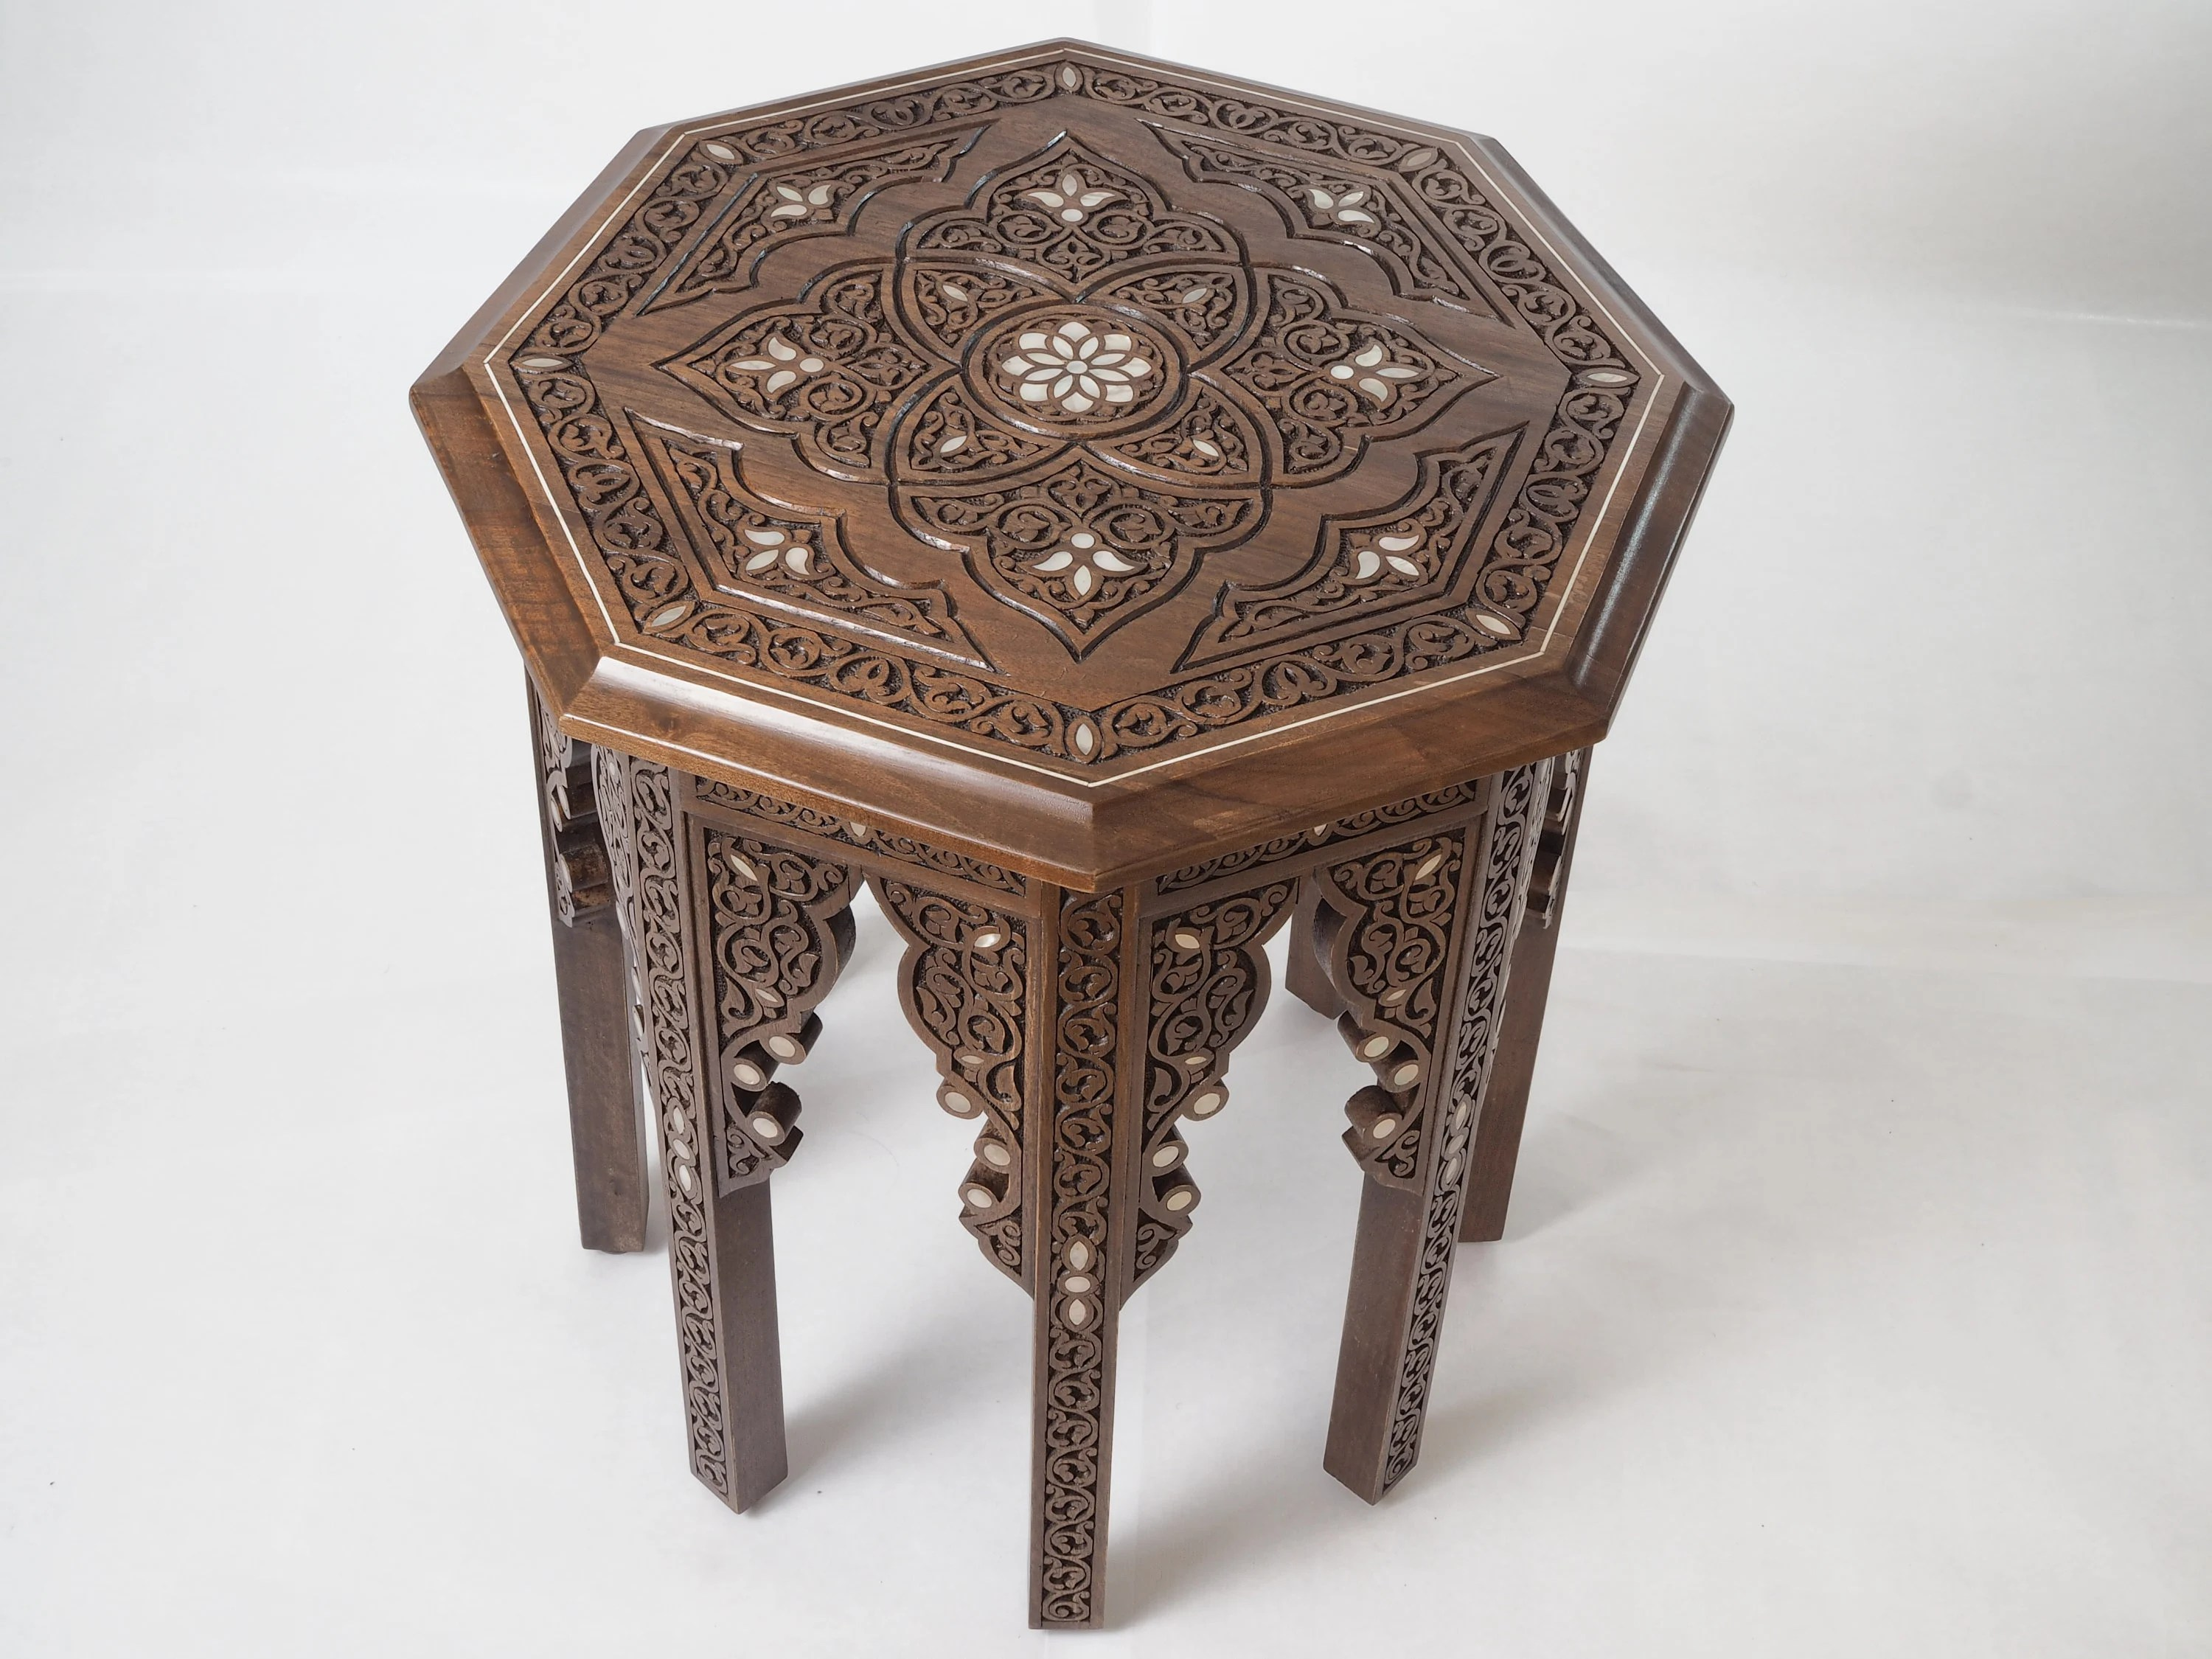 Couchtisch Orient Octagonal Coffee Table Inlaid With Mother Of Pearl Syrian Marquetry Carved Table Oriental Style Side Table Wooden Table Luxury Table